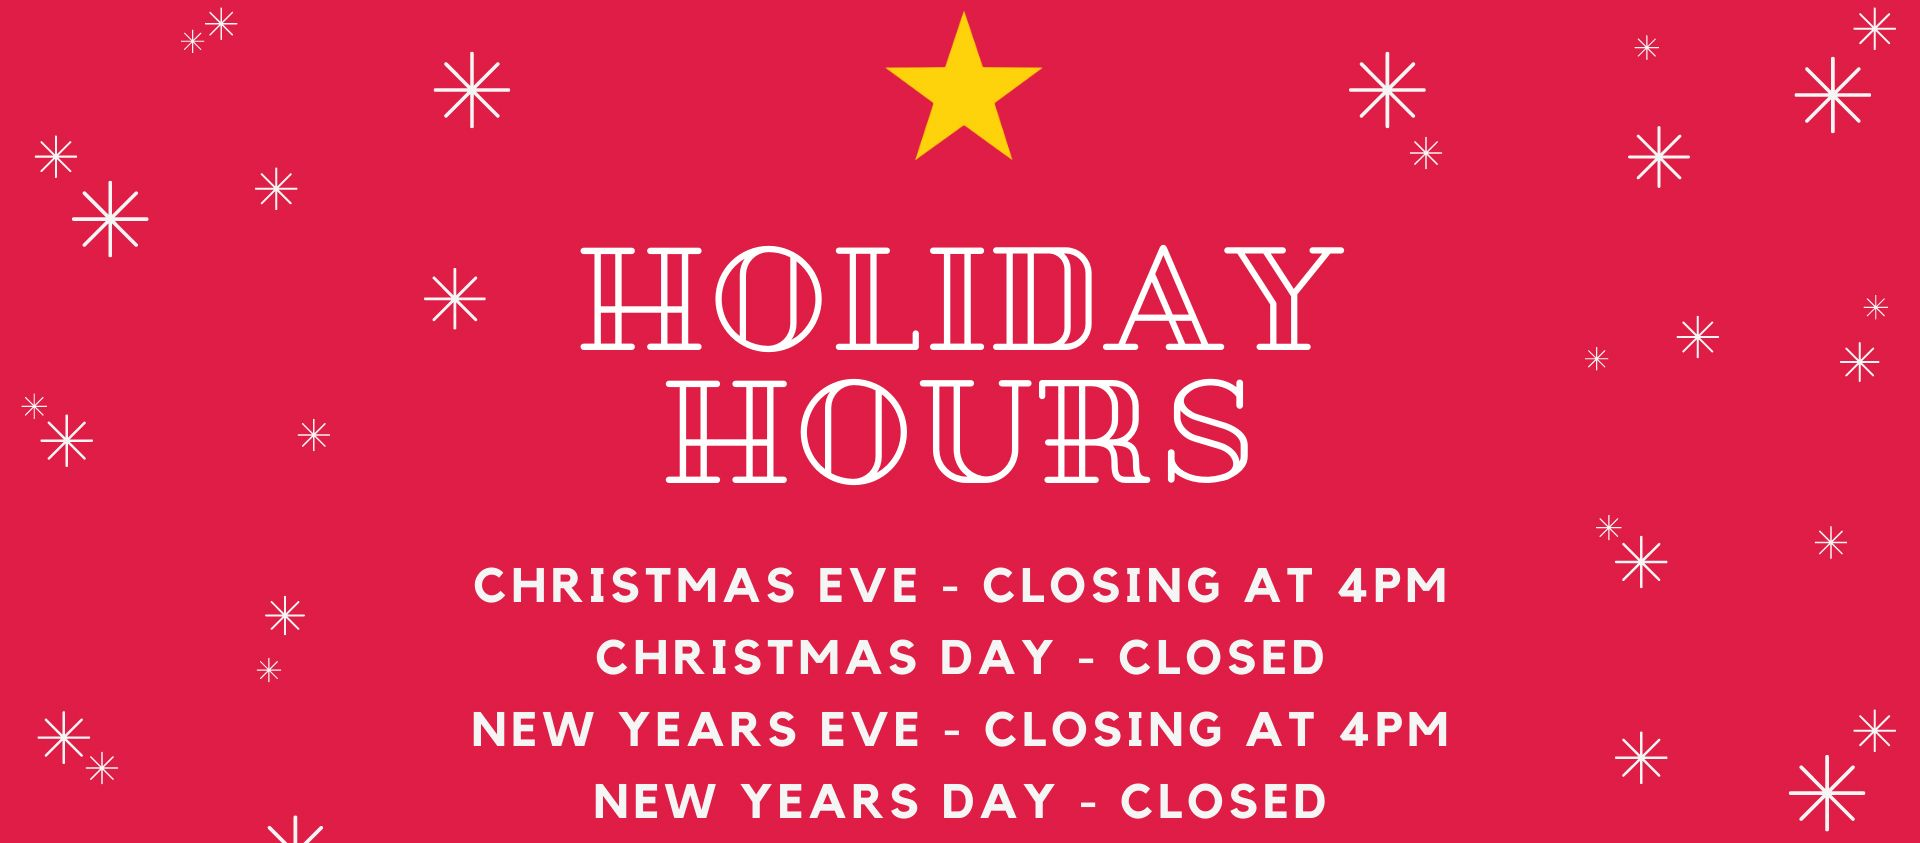 Holiday Hours2 (1).jpg